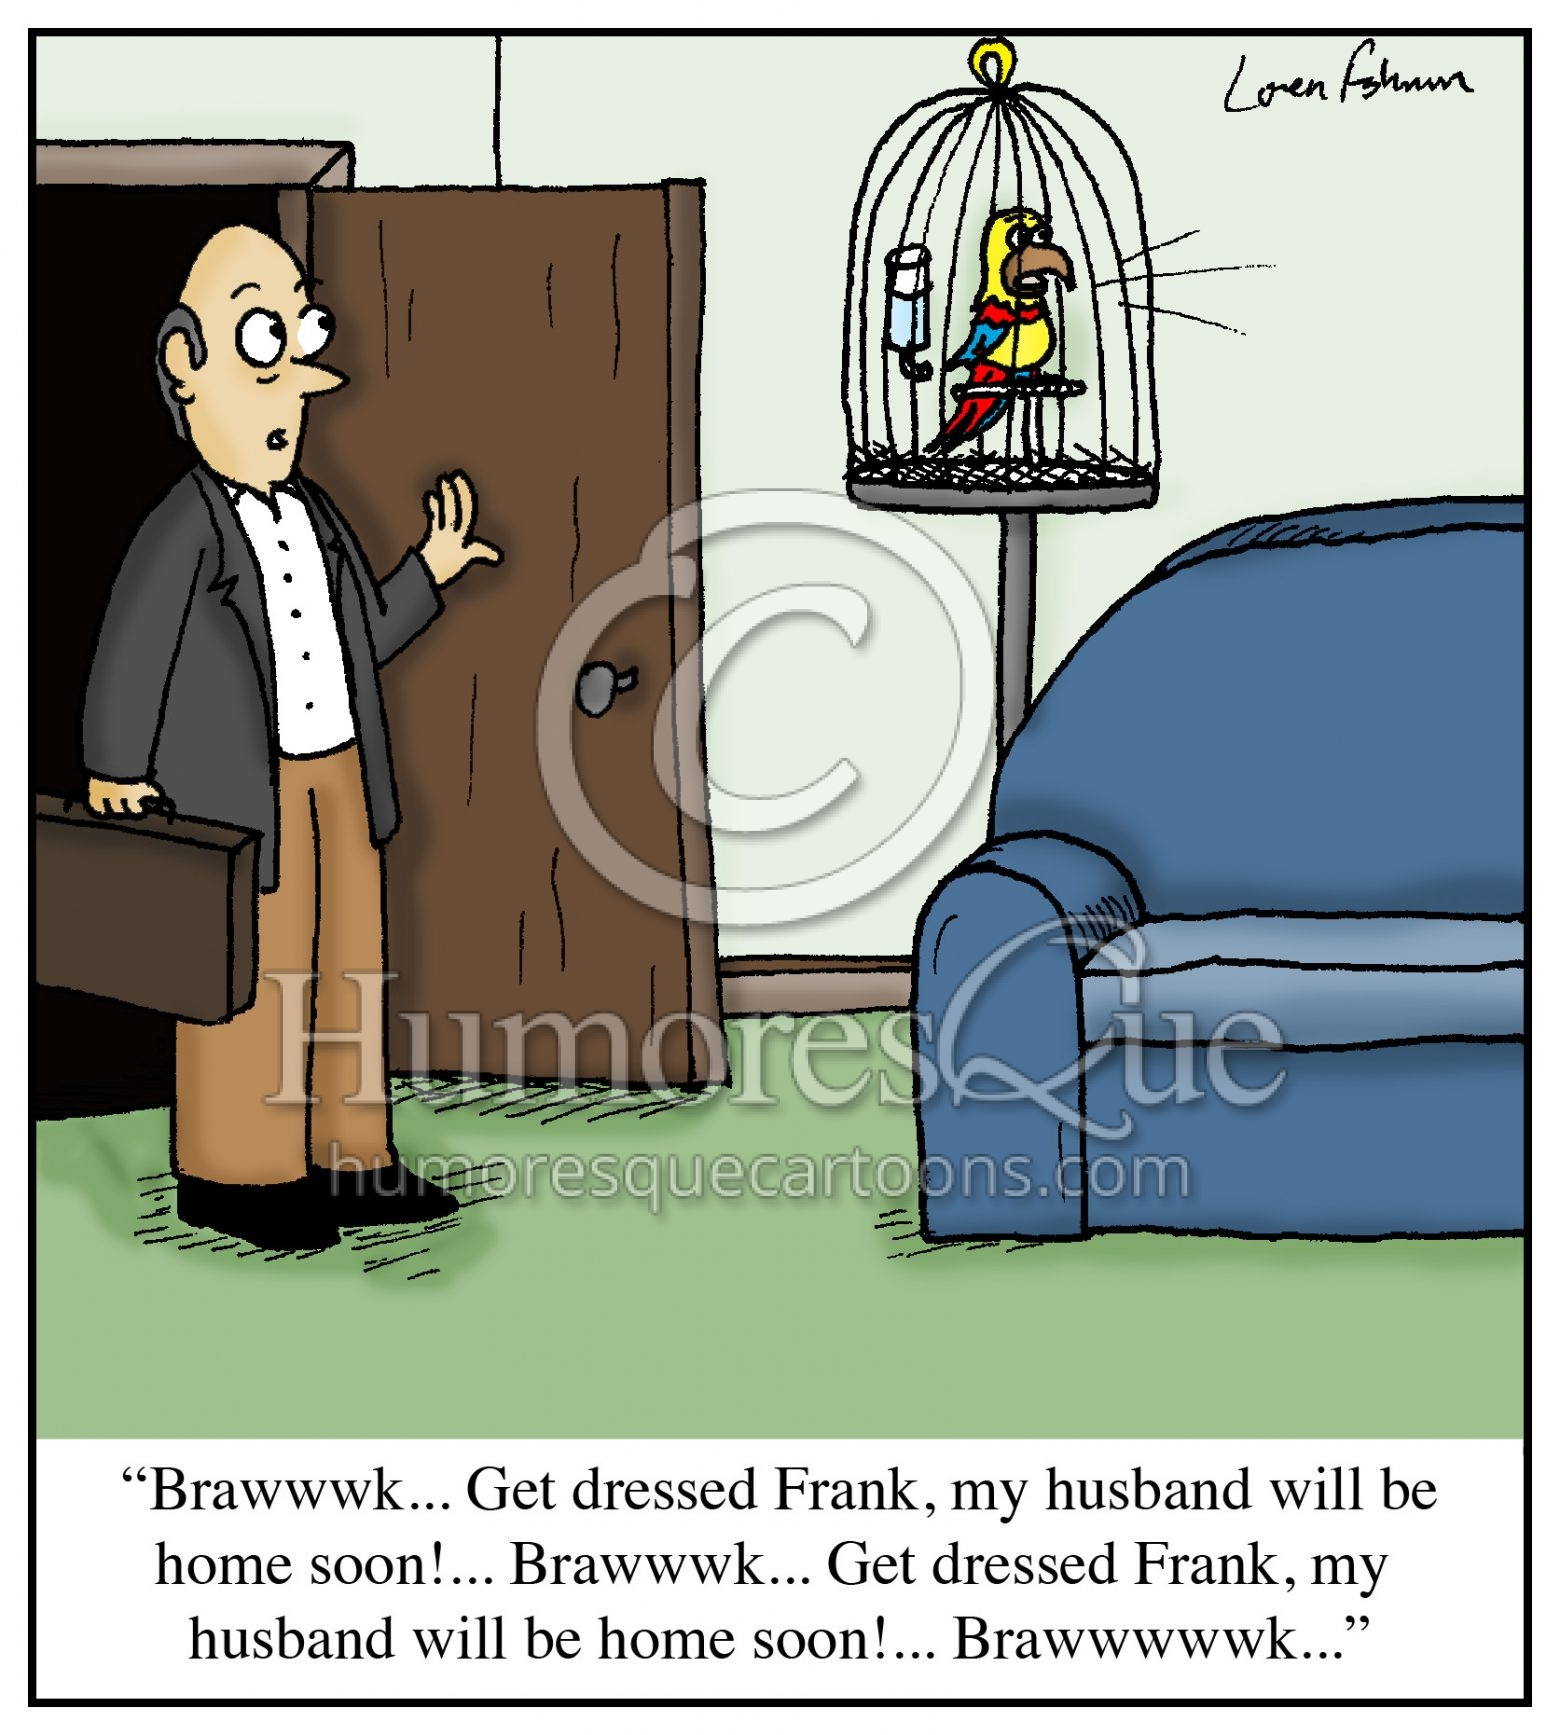 parrot exposing cheating wife marriage cartoon